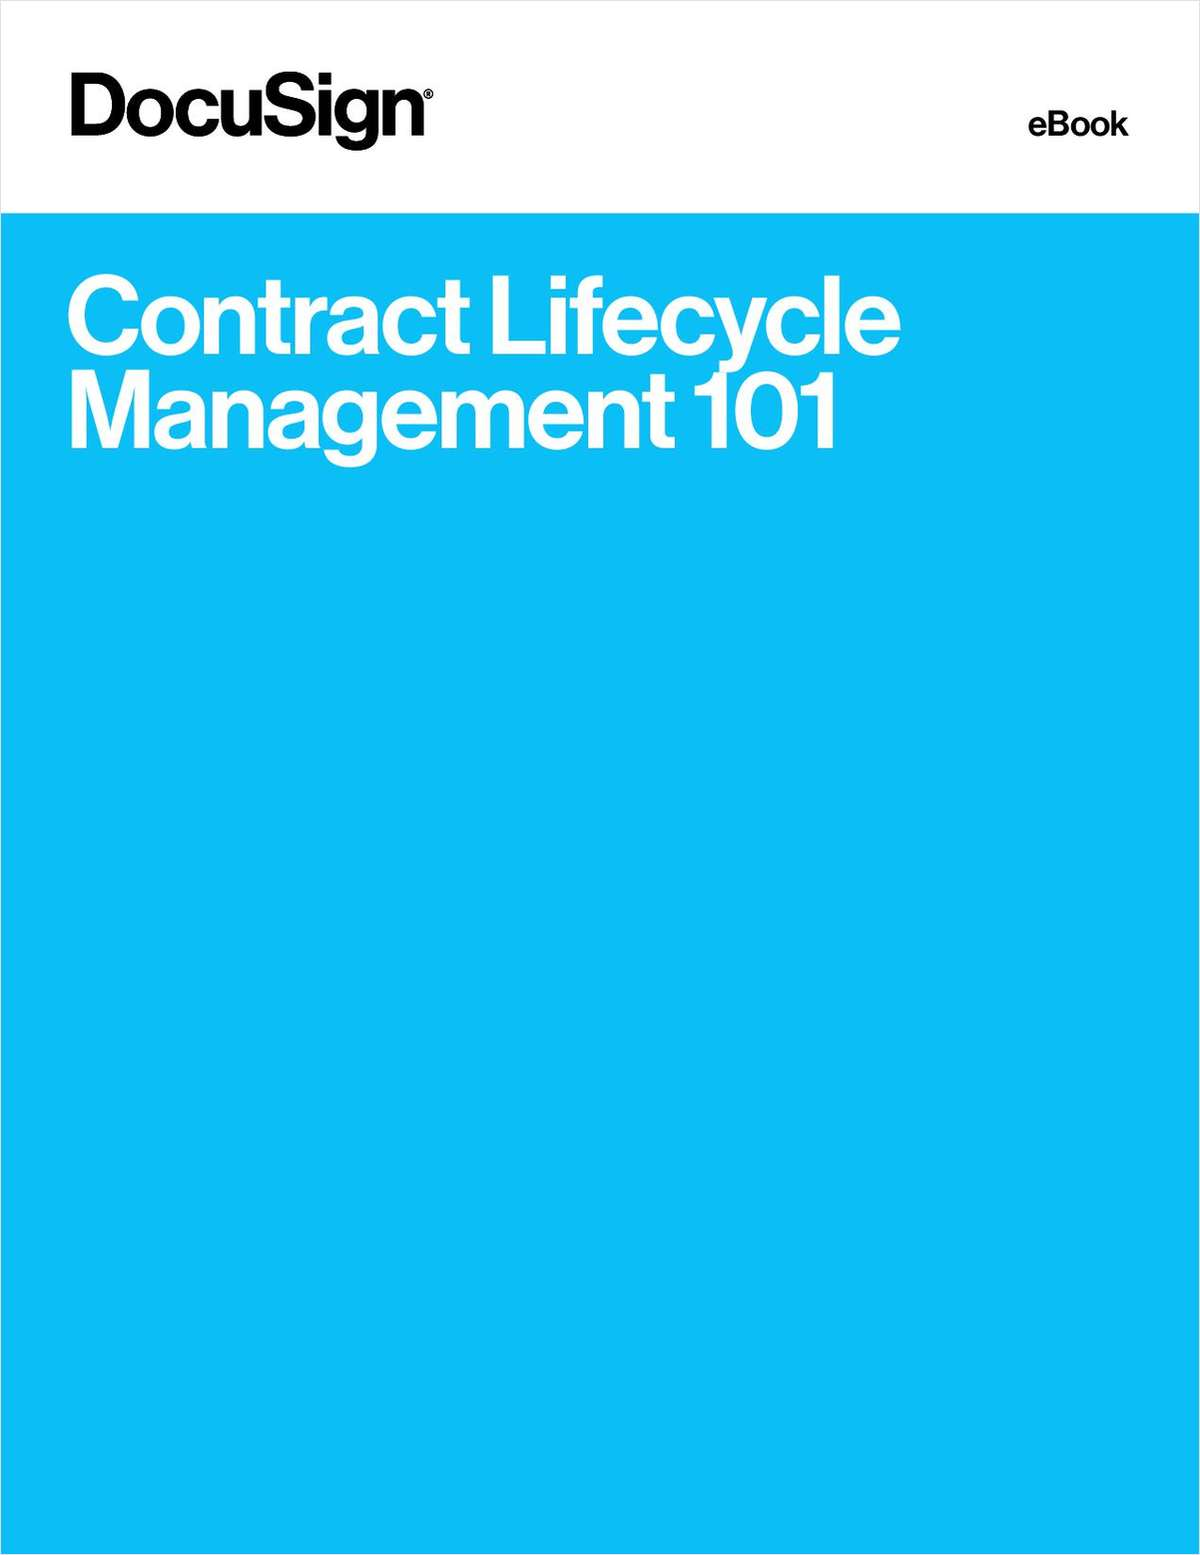 Contract Lifecycle Management 101